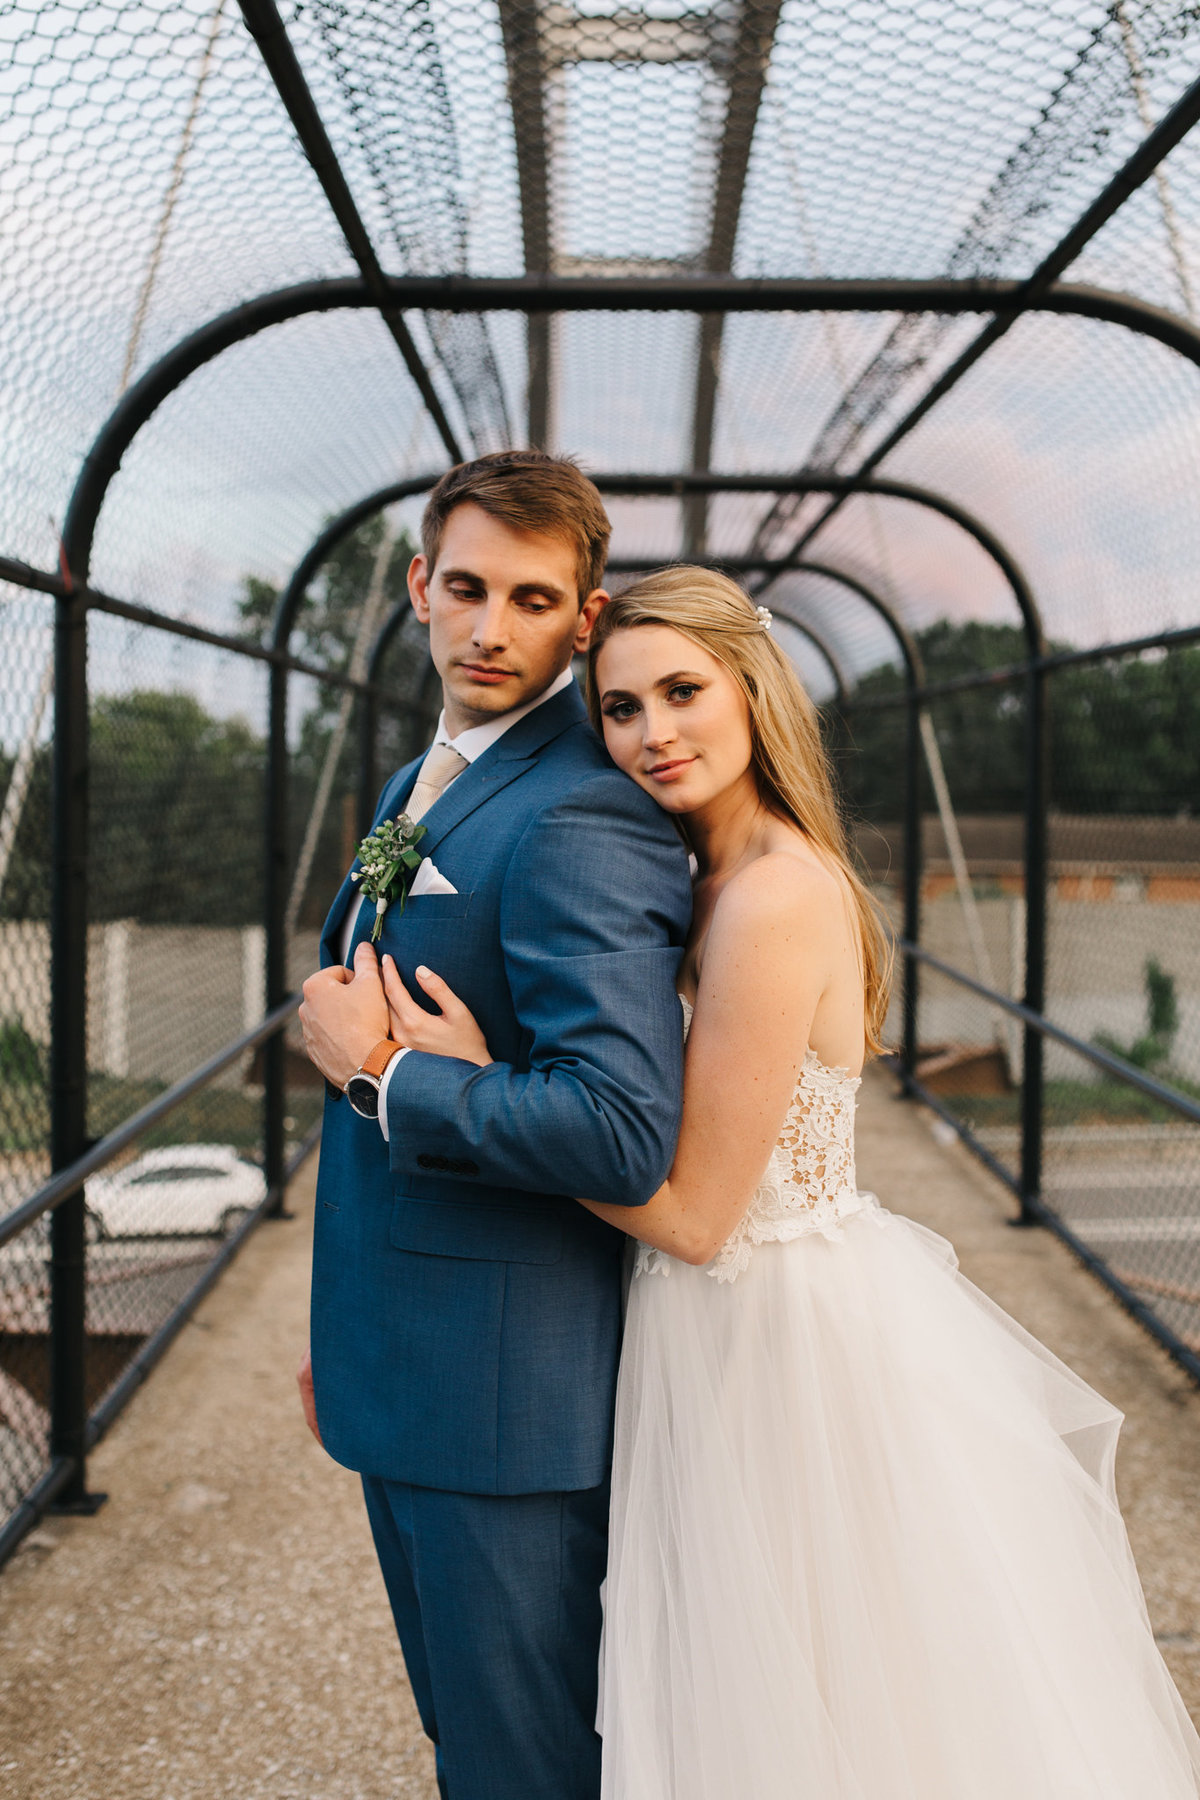 Best-Nashville-TN-Wedding-Photographer-450